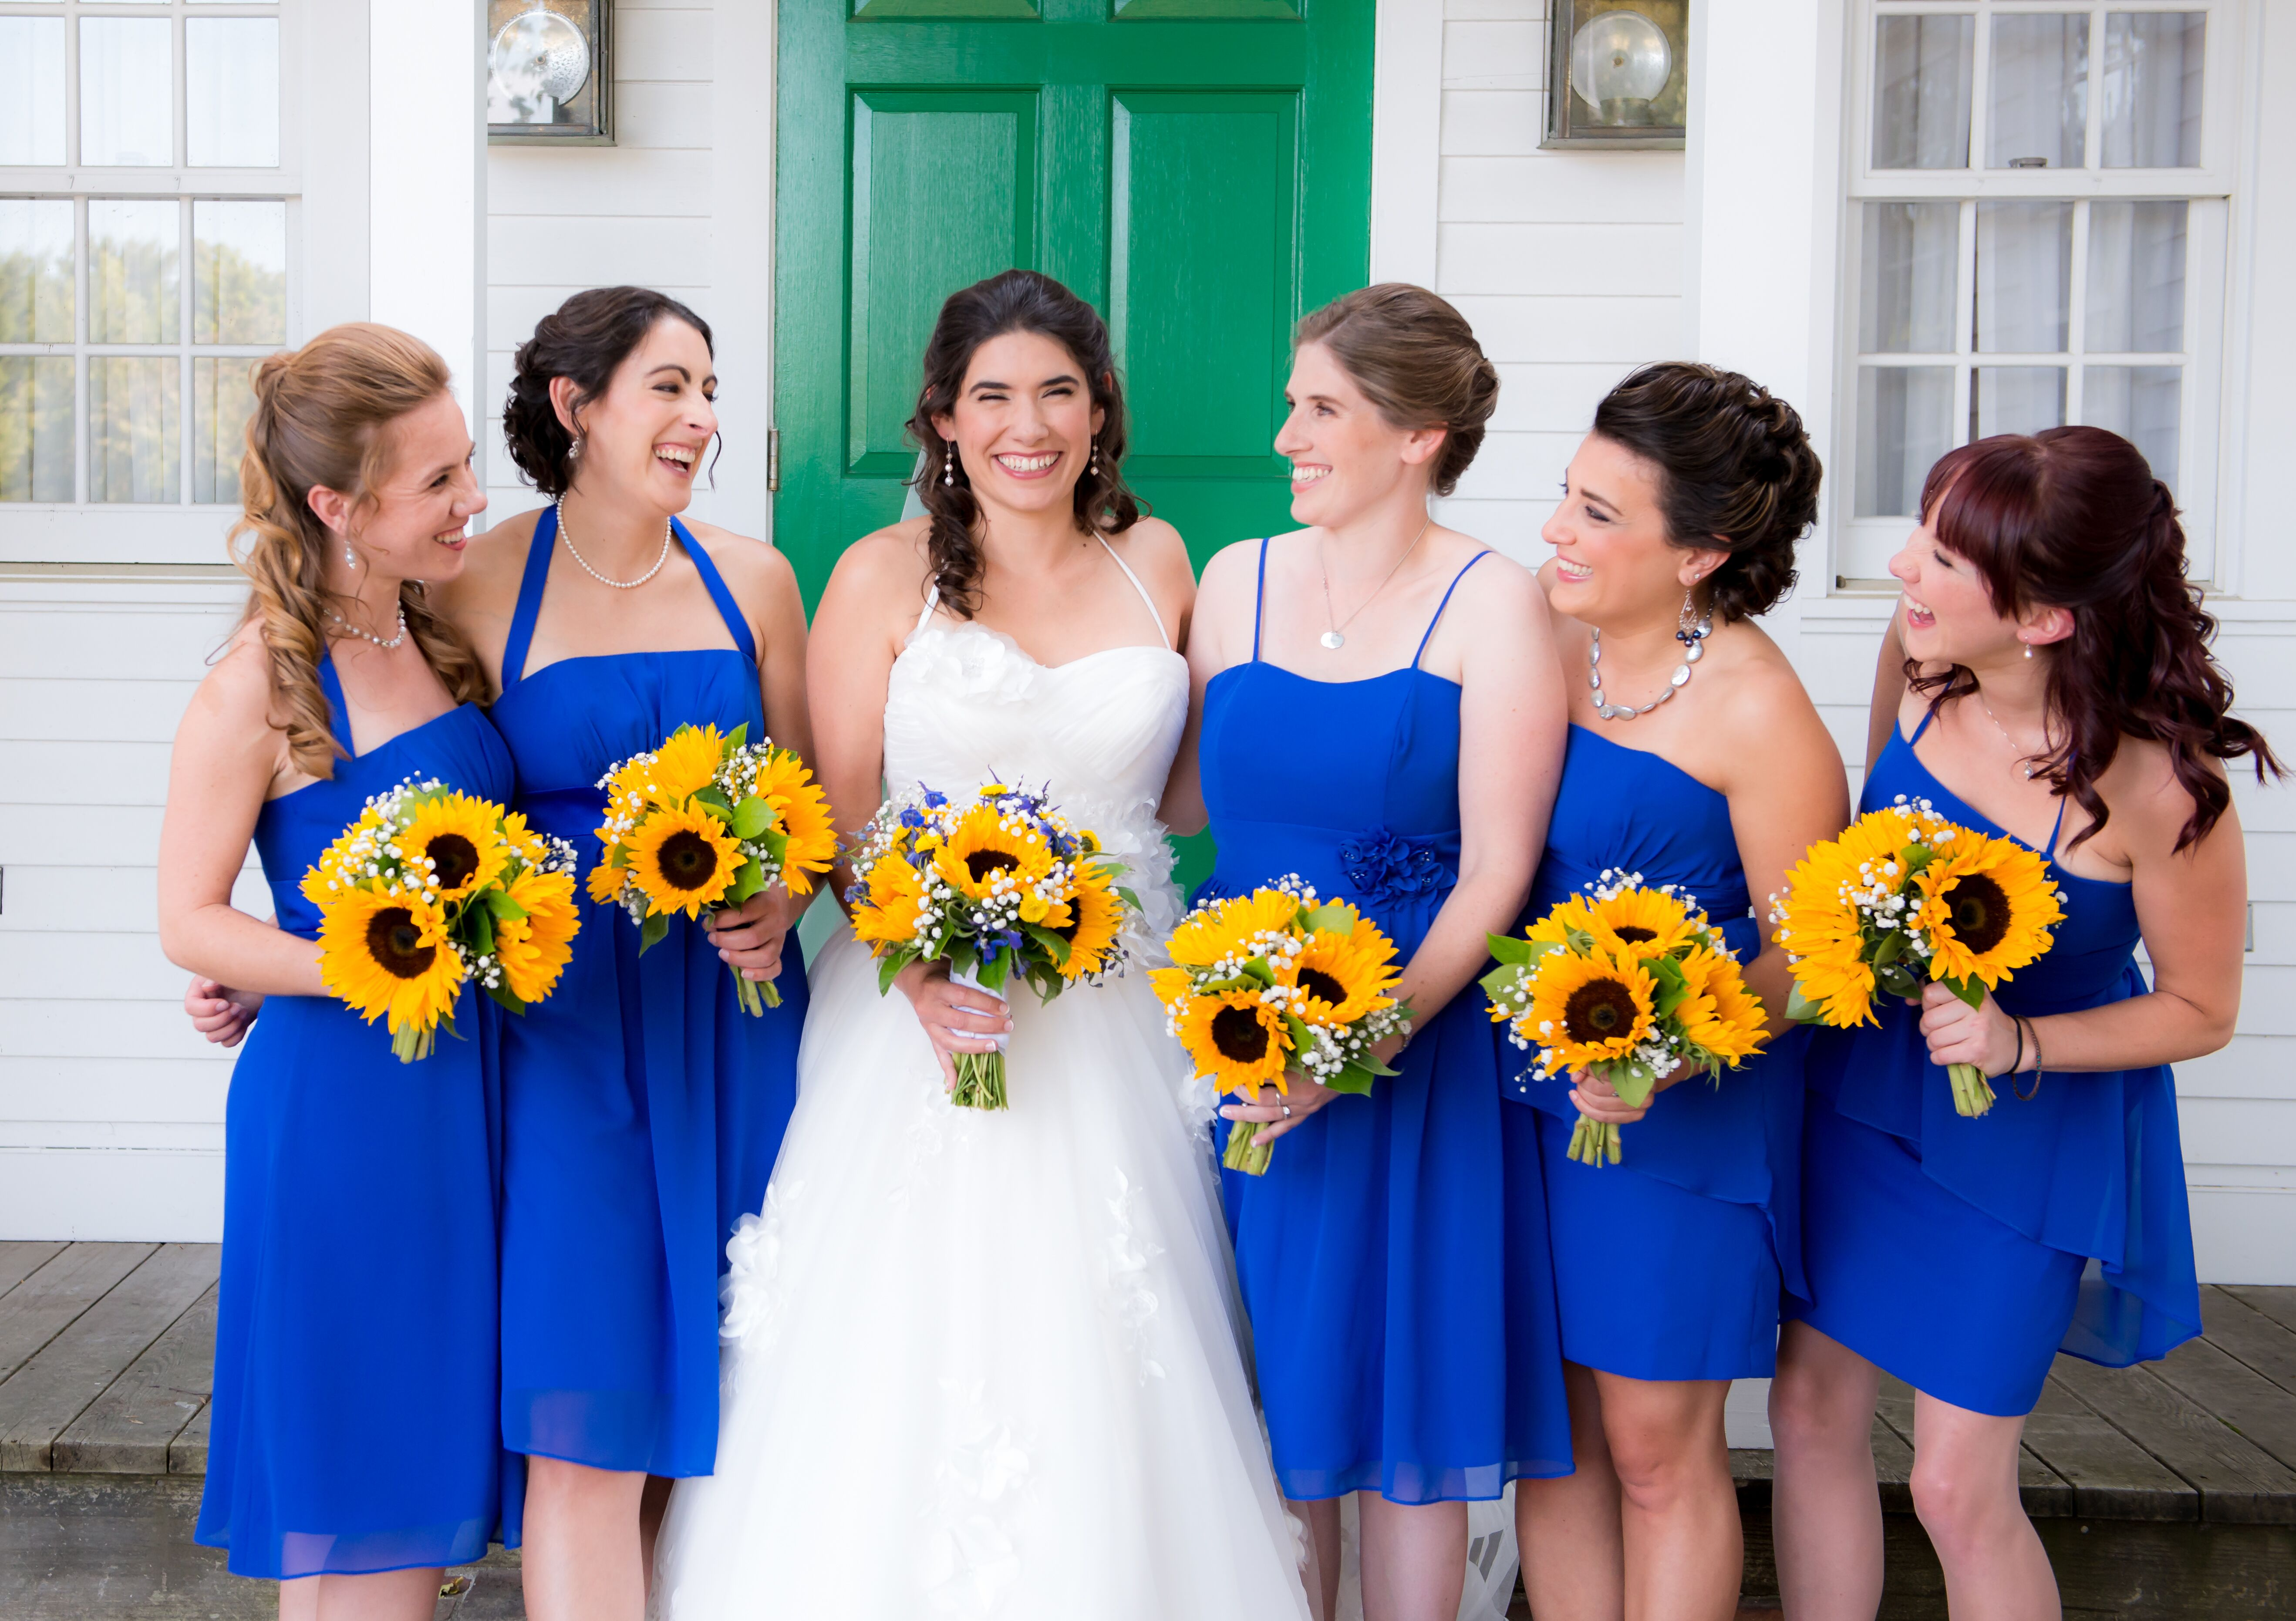 Bridesmaids In Royal Blue Cocktail Dresses With Sunflower